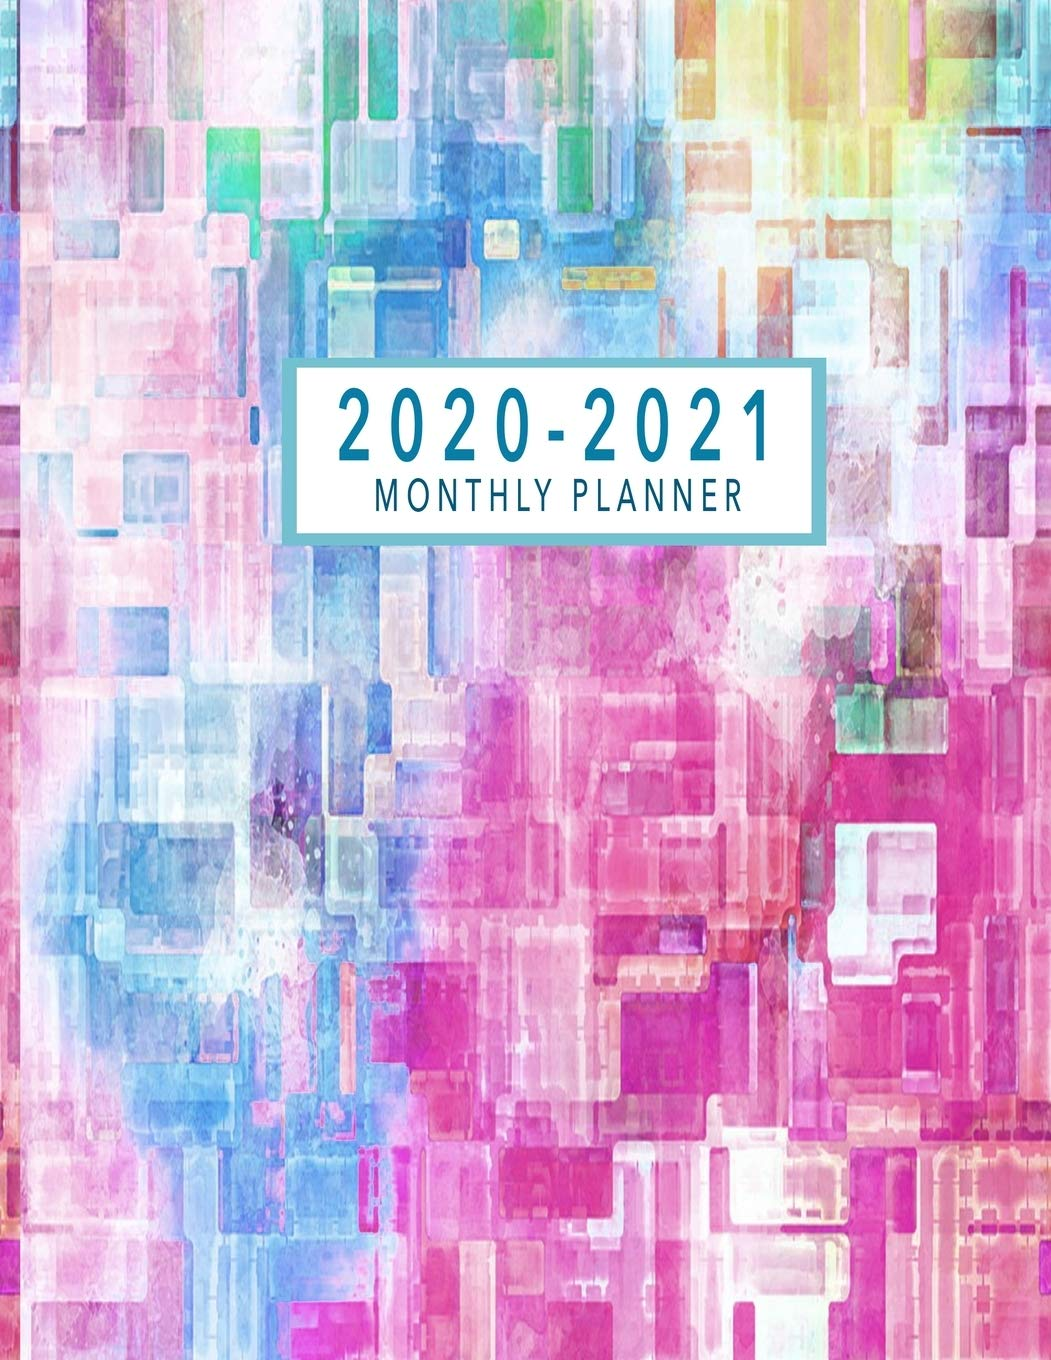 Amazon.com: 2020-2021 Monthly Planner: 2 Year Monthly ...